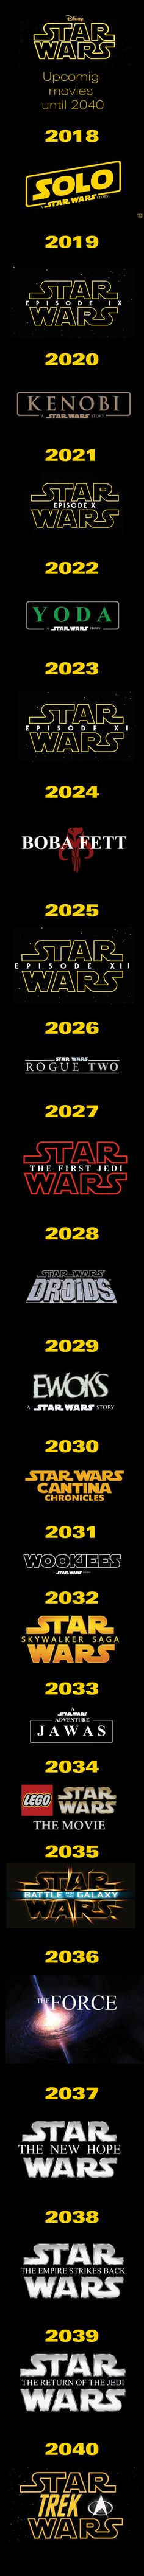 I have a bad feeling about this>>>>>> lol, but they for sure don't need to redo the original movies... and I hope this isn't real because this is too much - it'll ruin Star Wars.